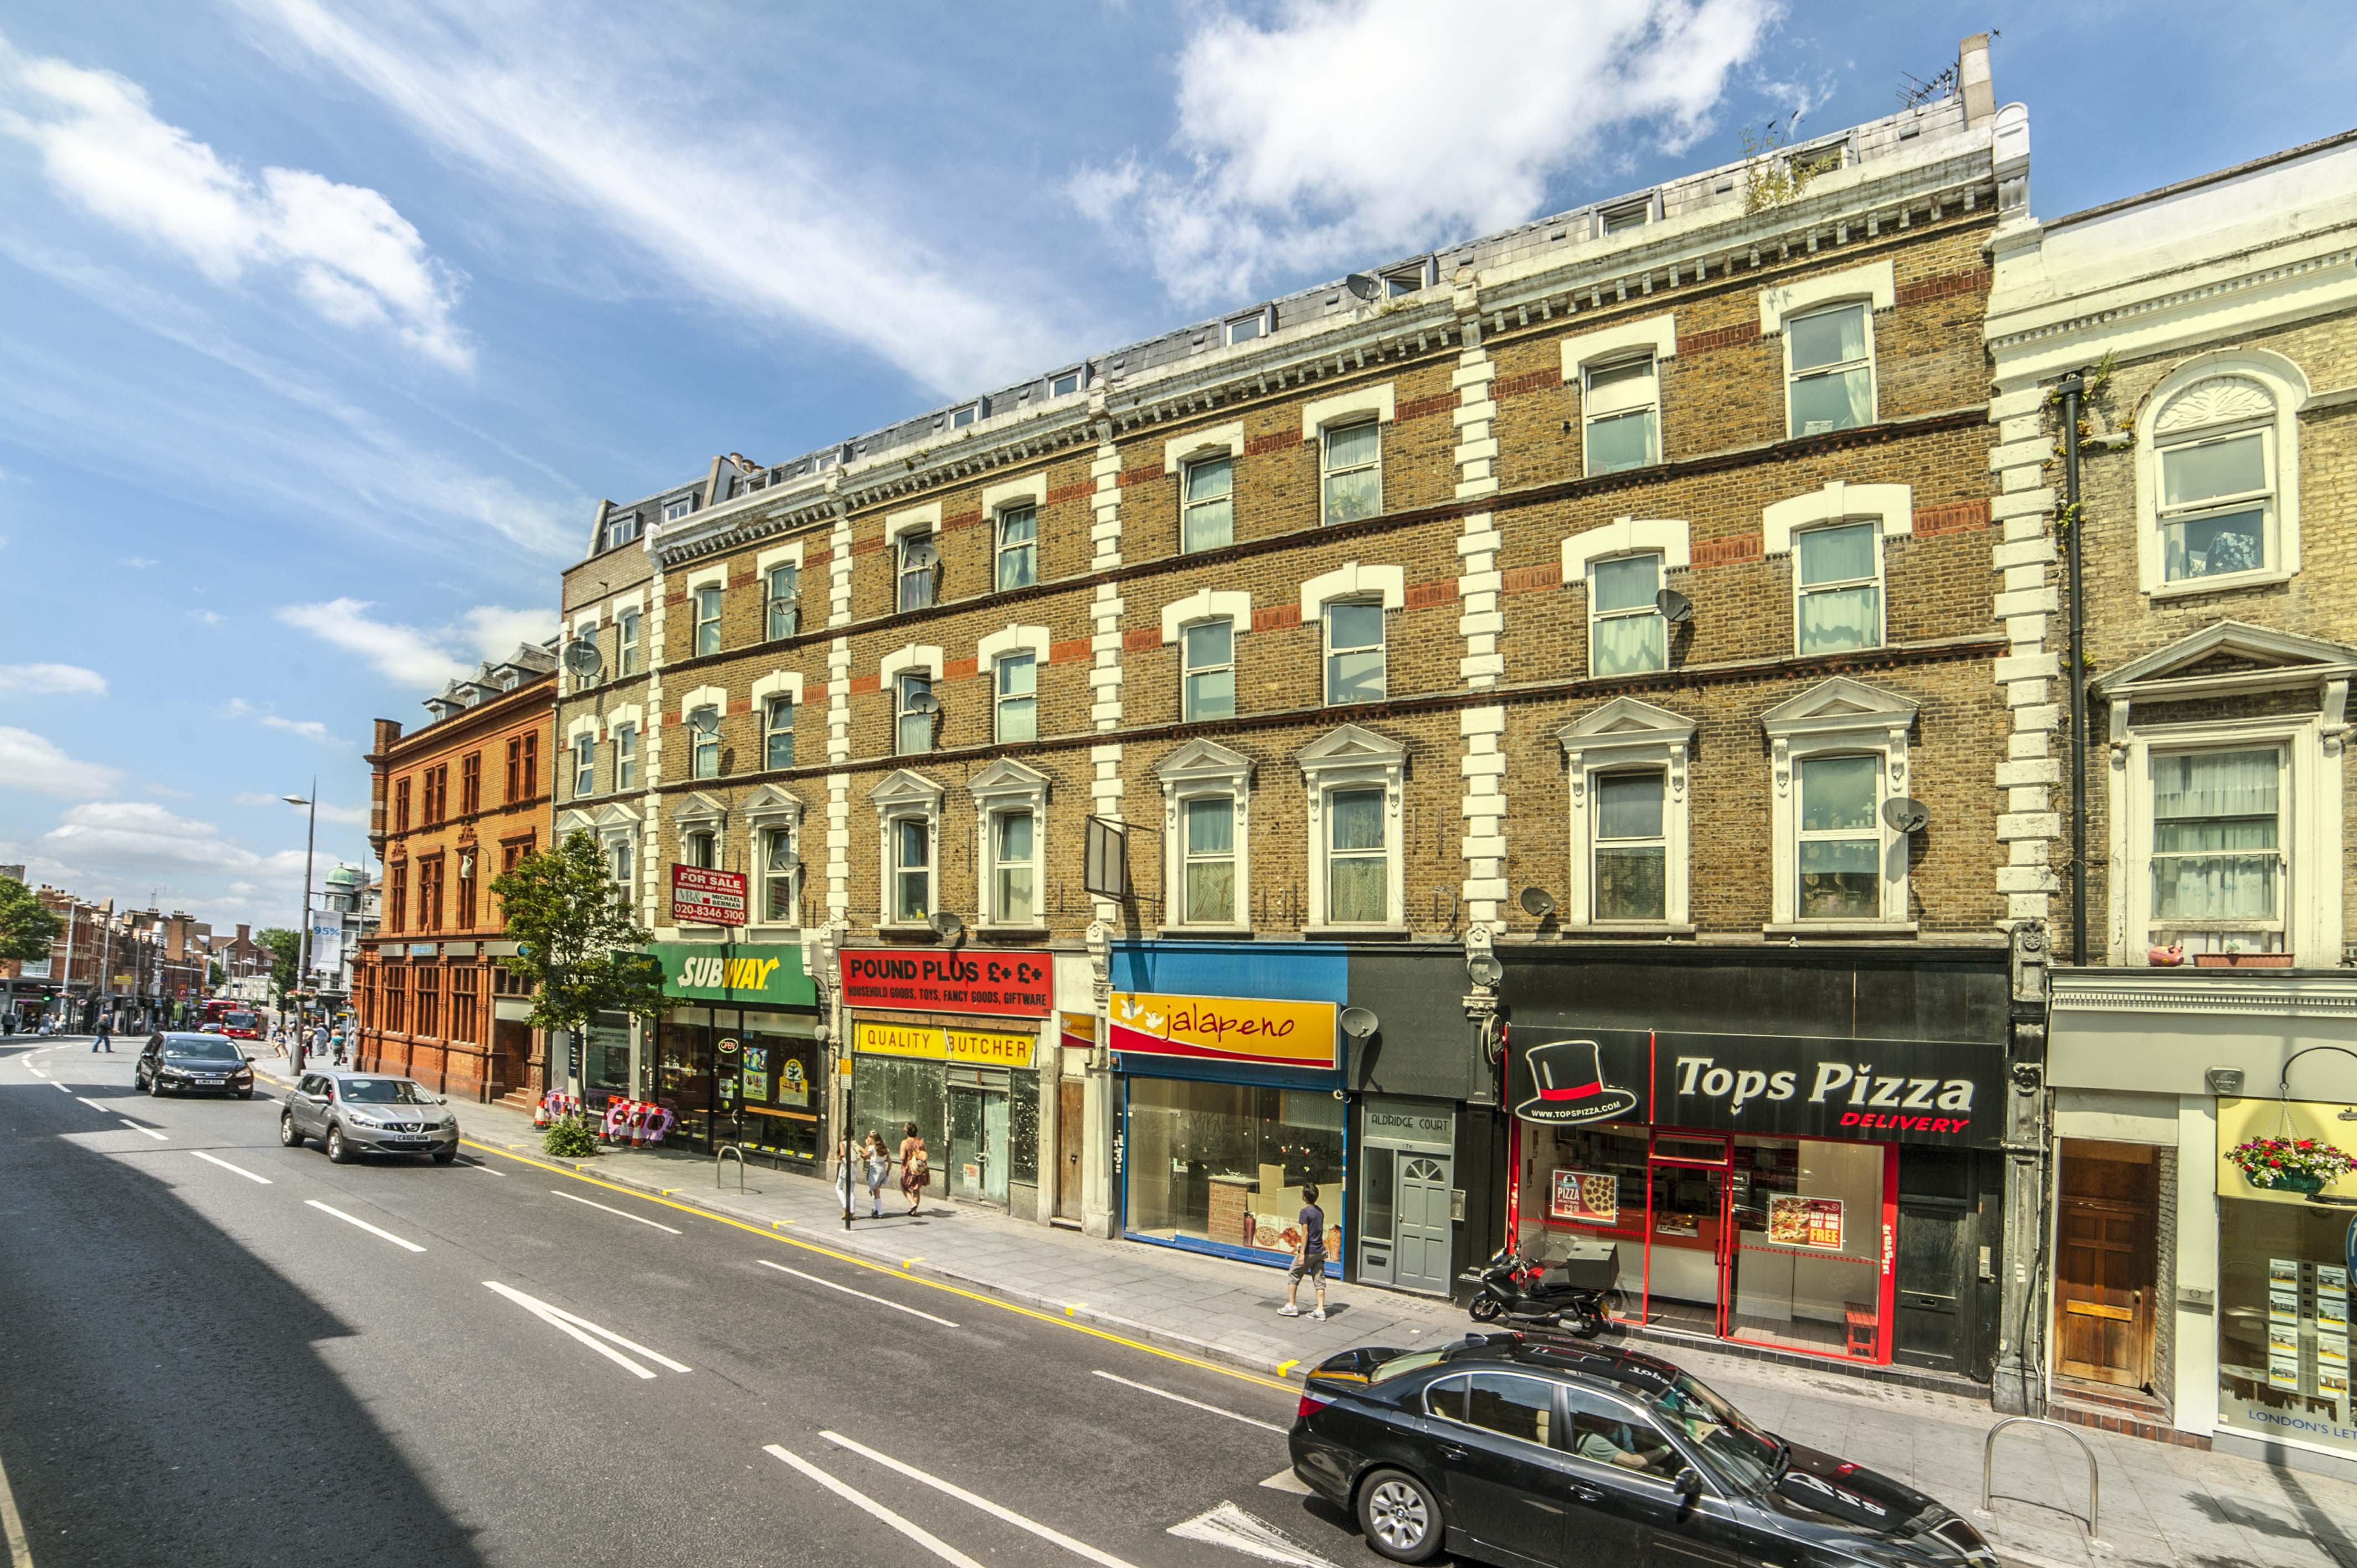 Lev Properties are proud to present this One-bedroom flat in the heart of Acton